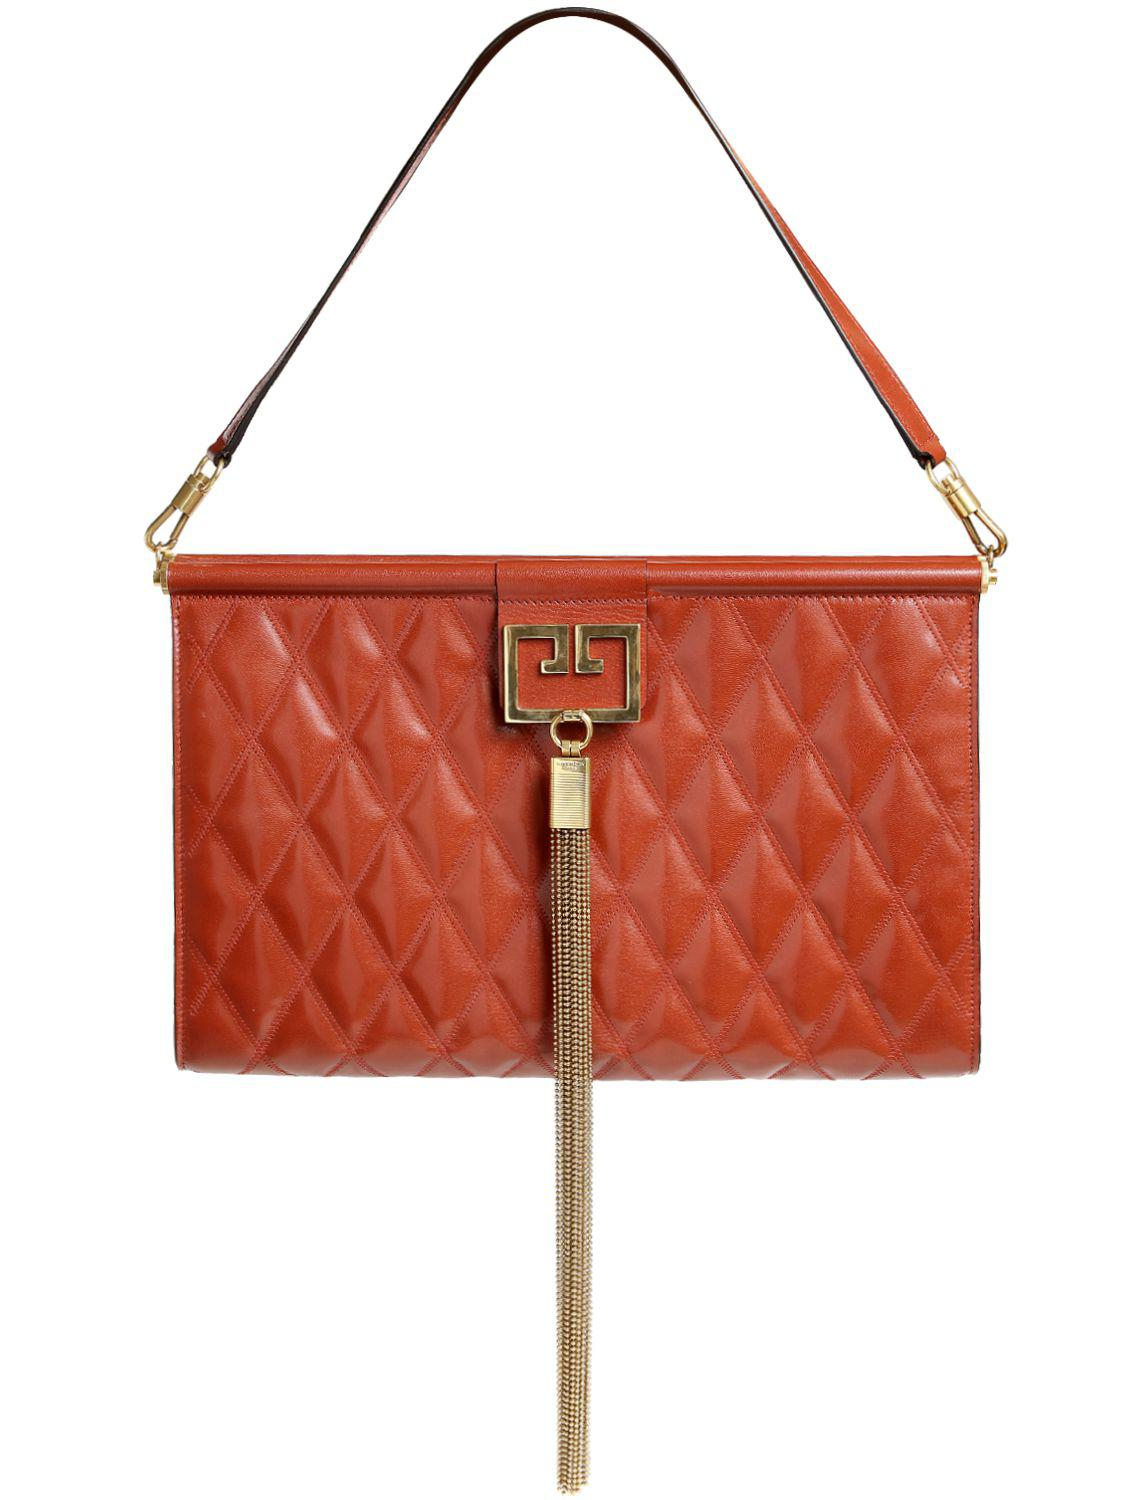 Givenchy - Red Large Gem Quilted Leather Clutch - Lyst. View fullscreen 80230062ac